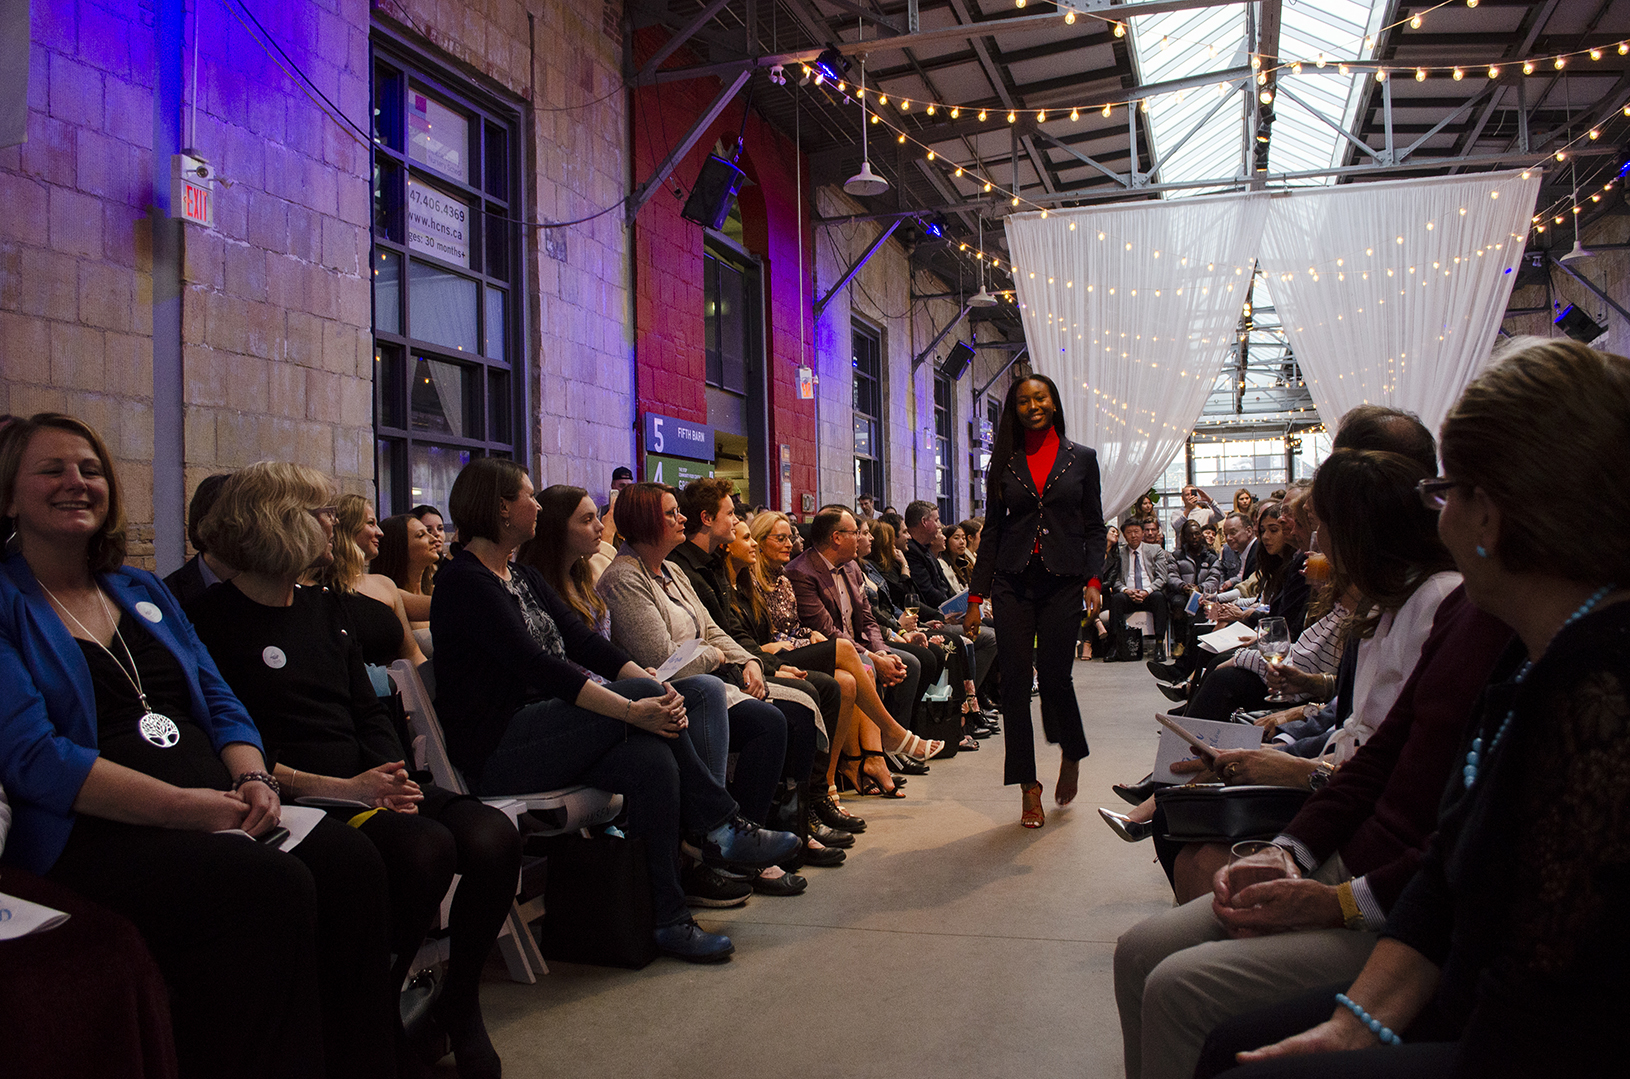 A photo of a fashion show with a model walking down a runway lined with people in the audience sitting down. The image is mostly dark with light coming in from windows in the ceiling above and a bright purple neon light in the left corner. There are small yellow string lights hung up in the background.